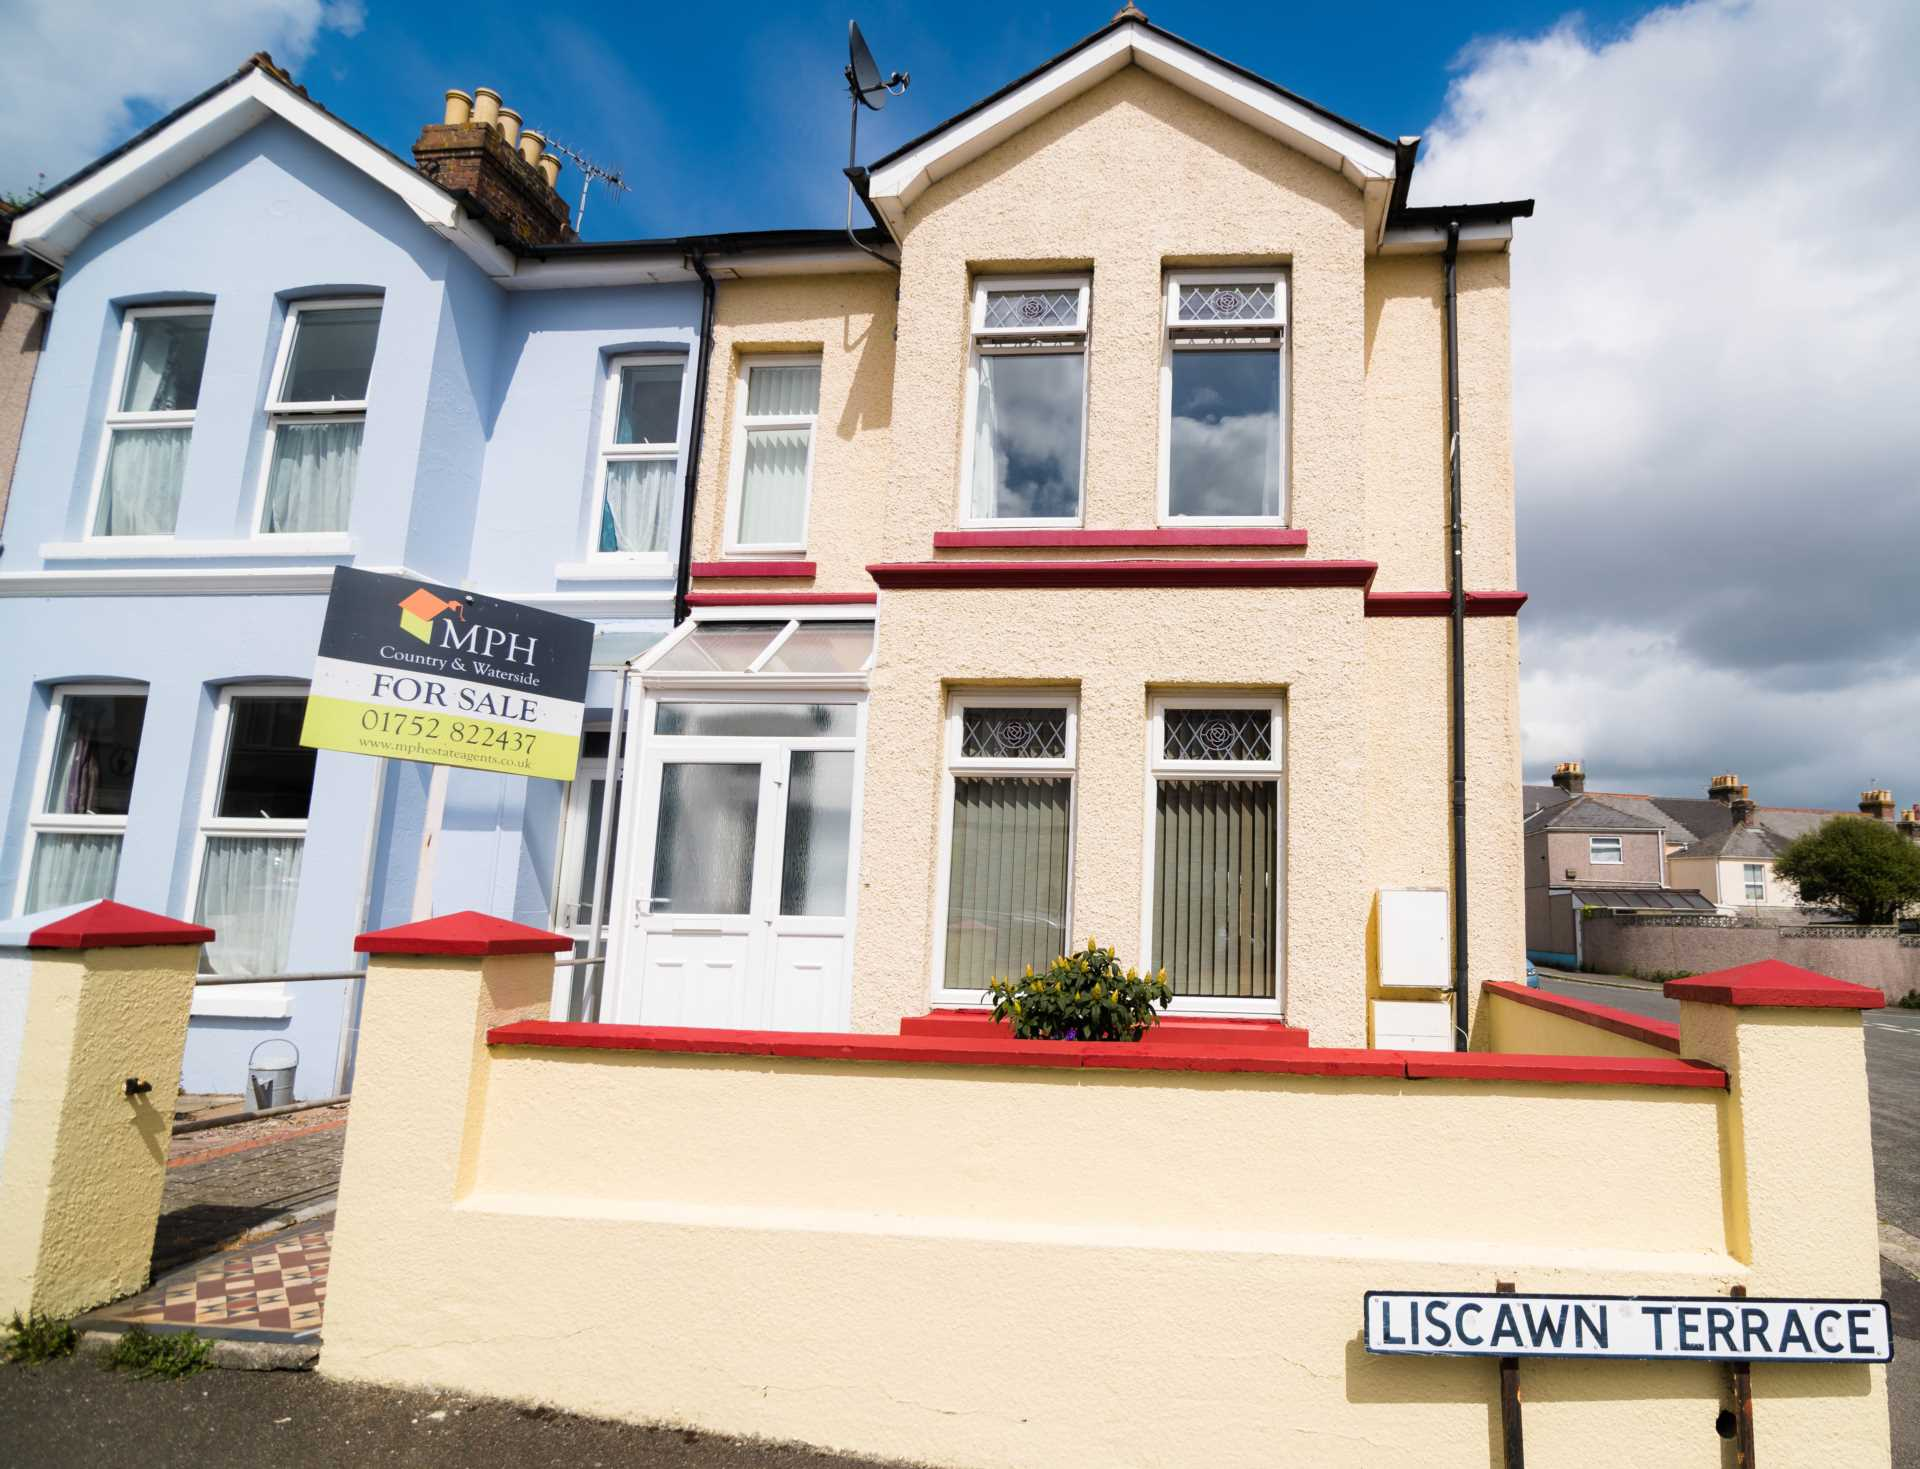 MPH Estate Agents - 4 Bedroom End Terrace, Liscawn Terrace, Torpoint